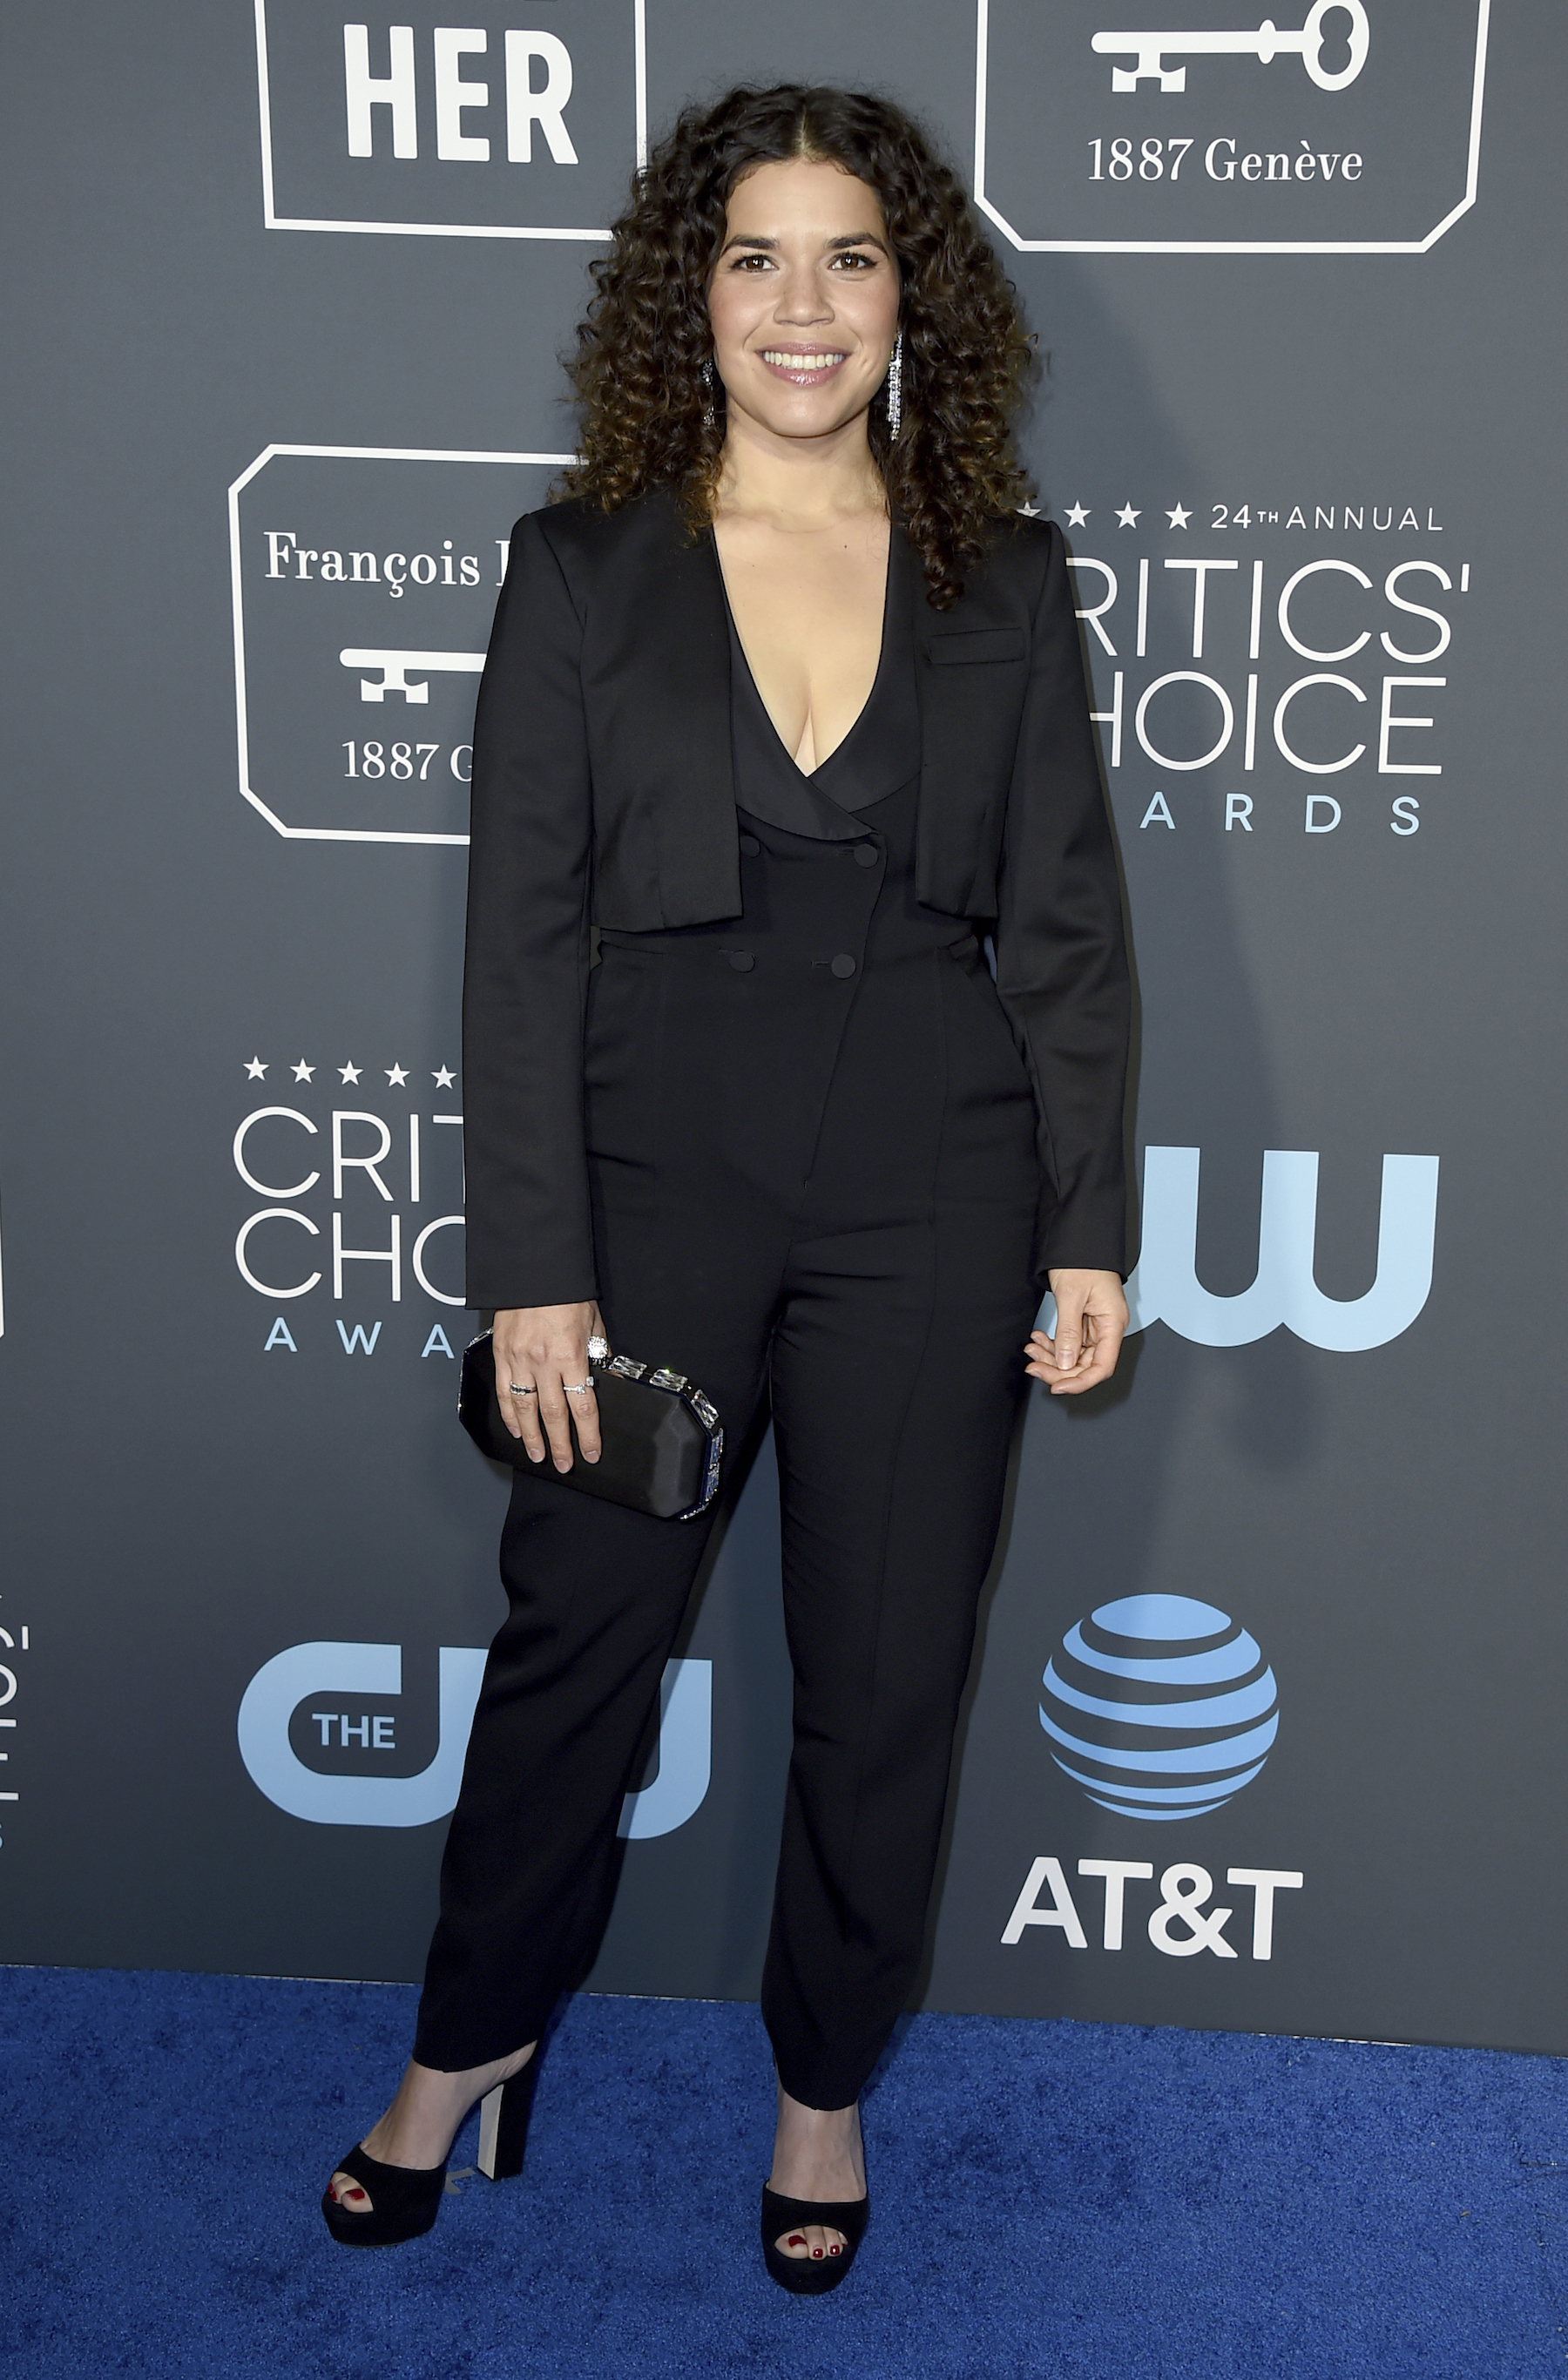 <div class='meta'><div class='origin-logo' data-origin='AP'></div><span class='caption-text' data-credit='Jordan Strauss/Invision/AP'>America Ferrera arrives at the 24th annual Critics' Choice Awards on Sunday, Jan. 13, 2019, at the Barker Hangar in Santa Monica, Calif.</span></div>